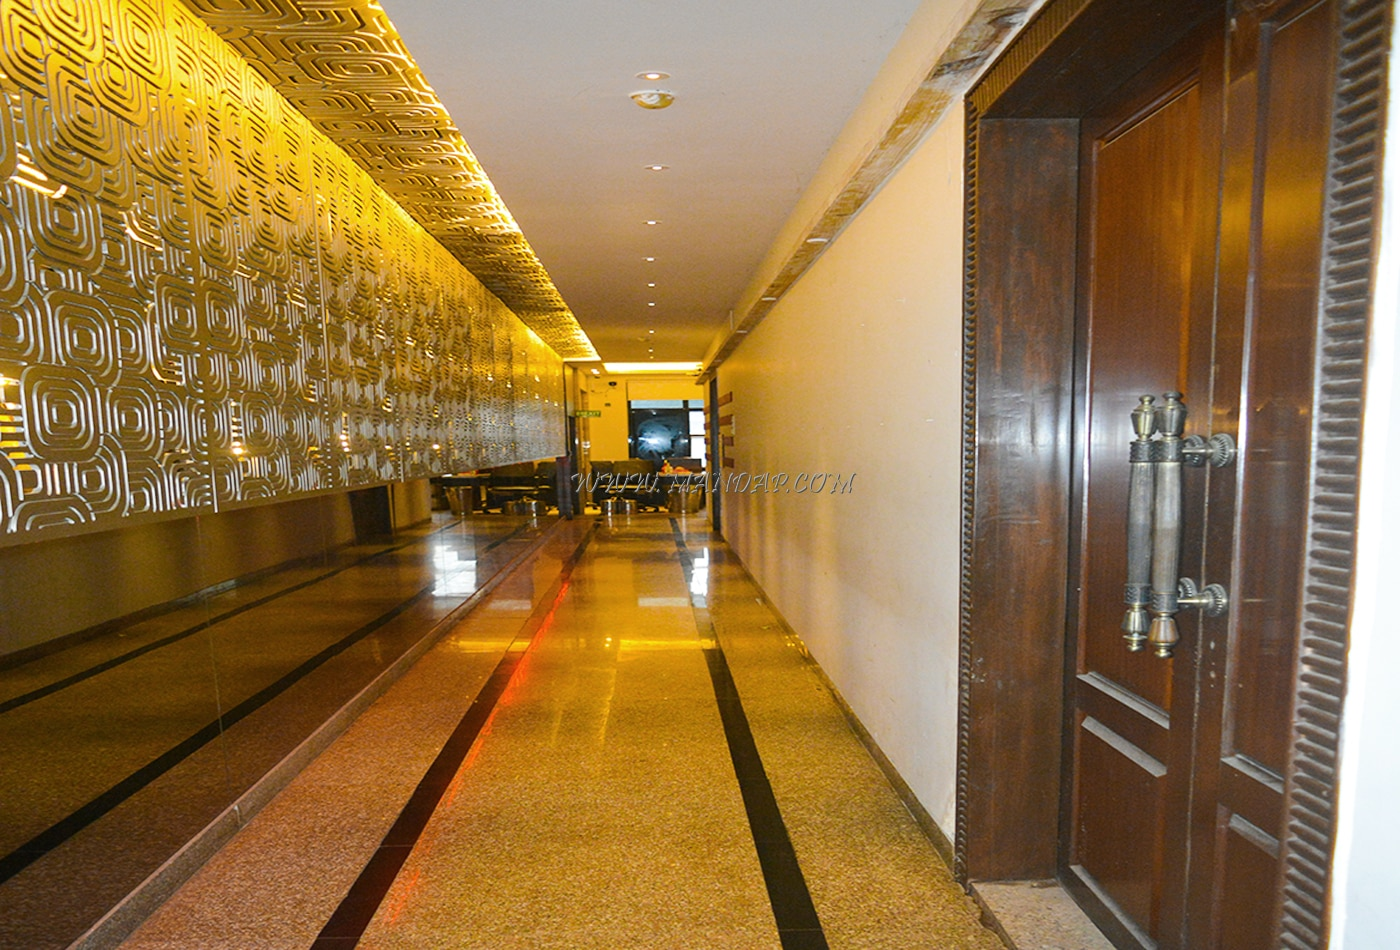 Find More Banquet Halls in Andheri West